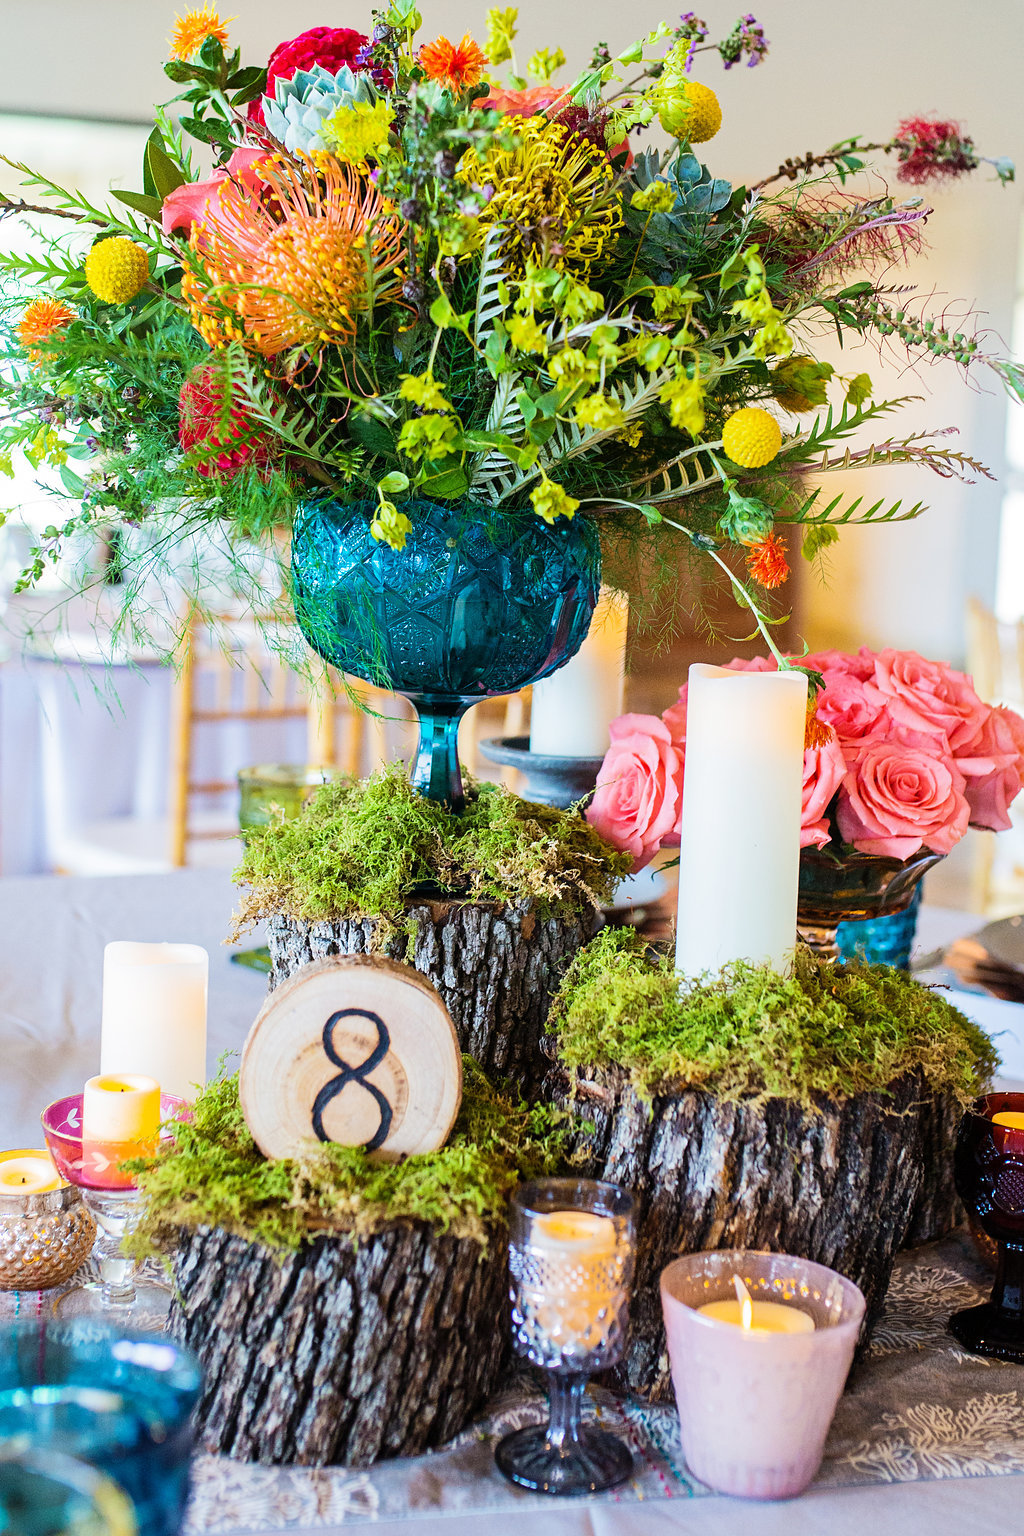 Fun and Colorful Wedding Inspiration with Paper Flowers - photo by Sarah Kathryn Portrait Design https://ruffledblog.com/fun-and-colorful-wedding-inspiration-with-paper-flowers